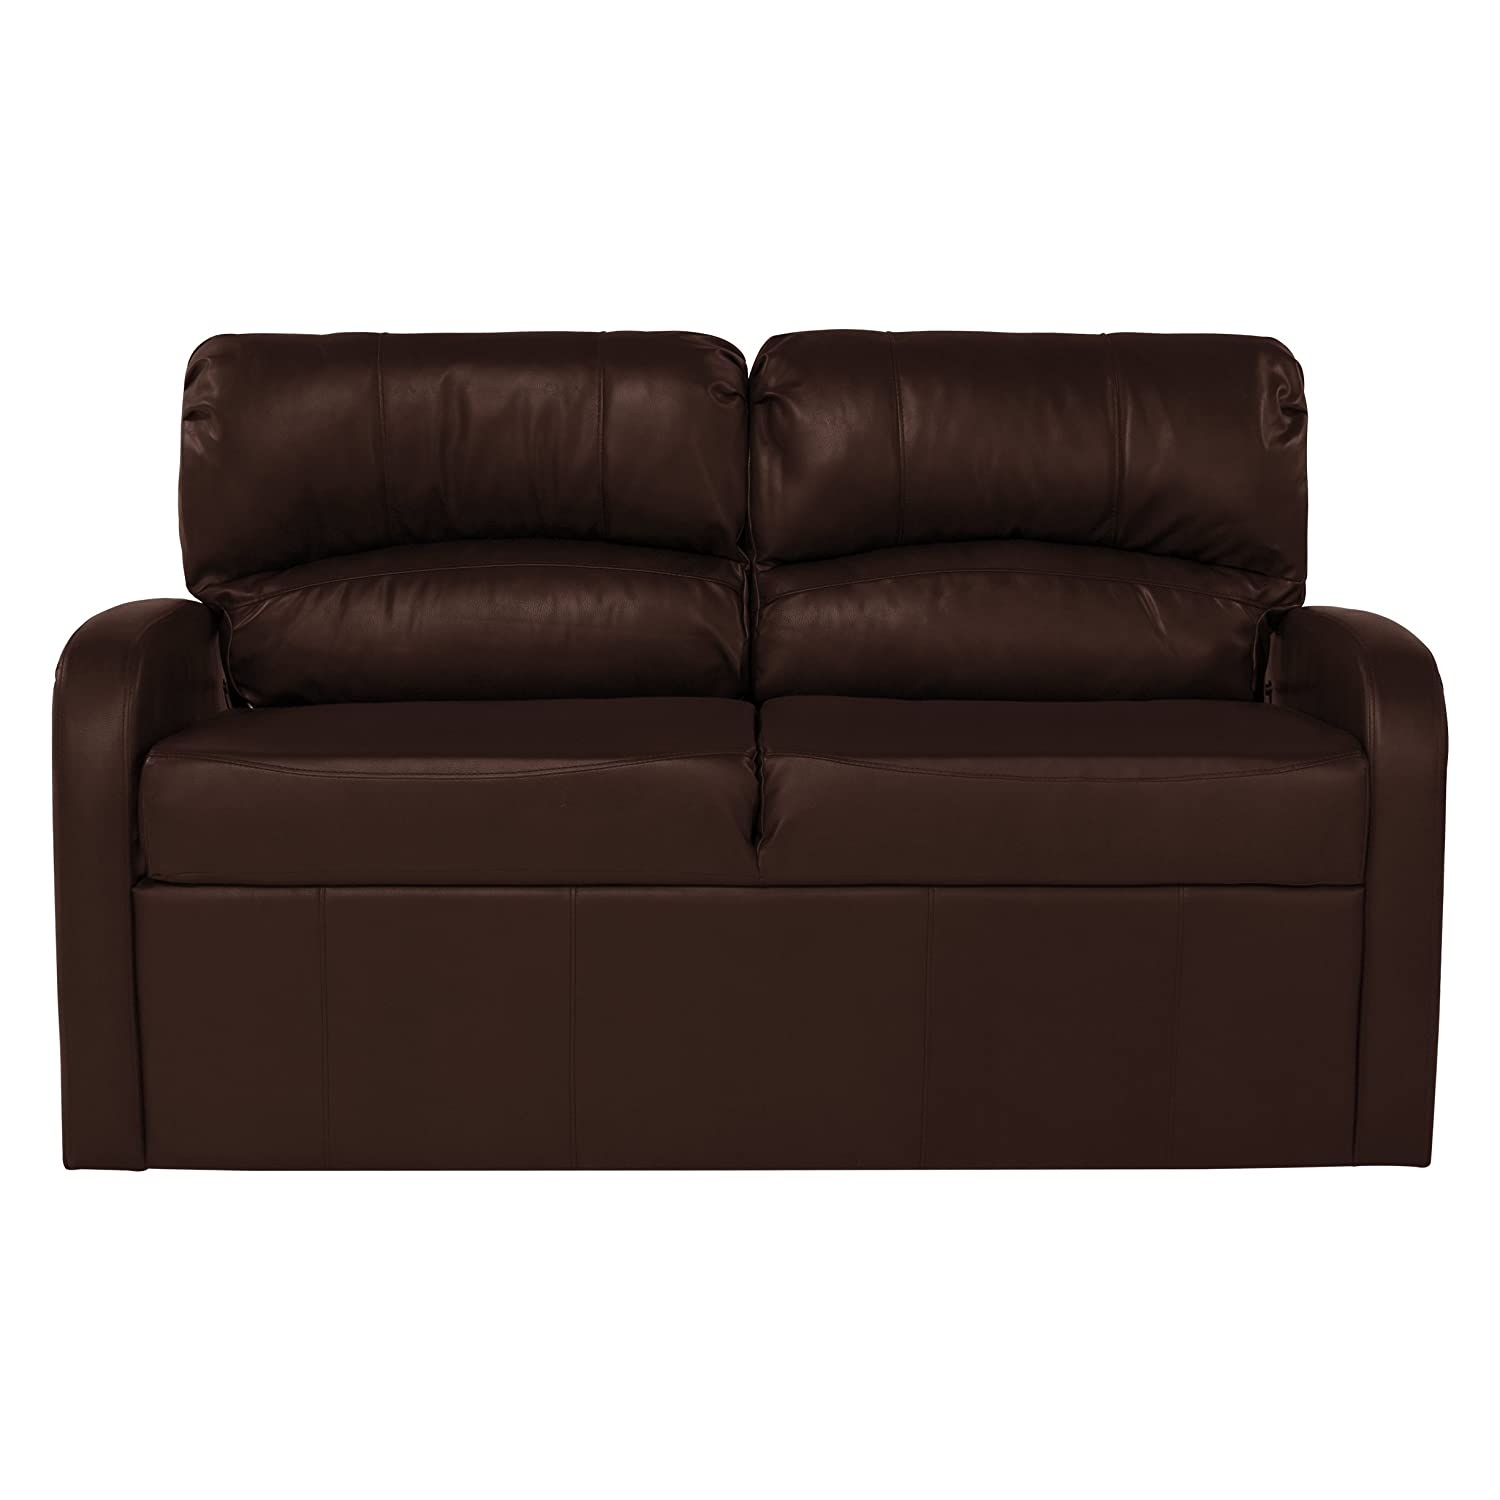 RecPro Charles Collection 70 RV Jack Knife Sofa w Arms RV Sleeper Sofa RV Couch RV Living Room Slideout Furniture RV Furniture Camper Furniture Mahogany